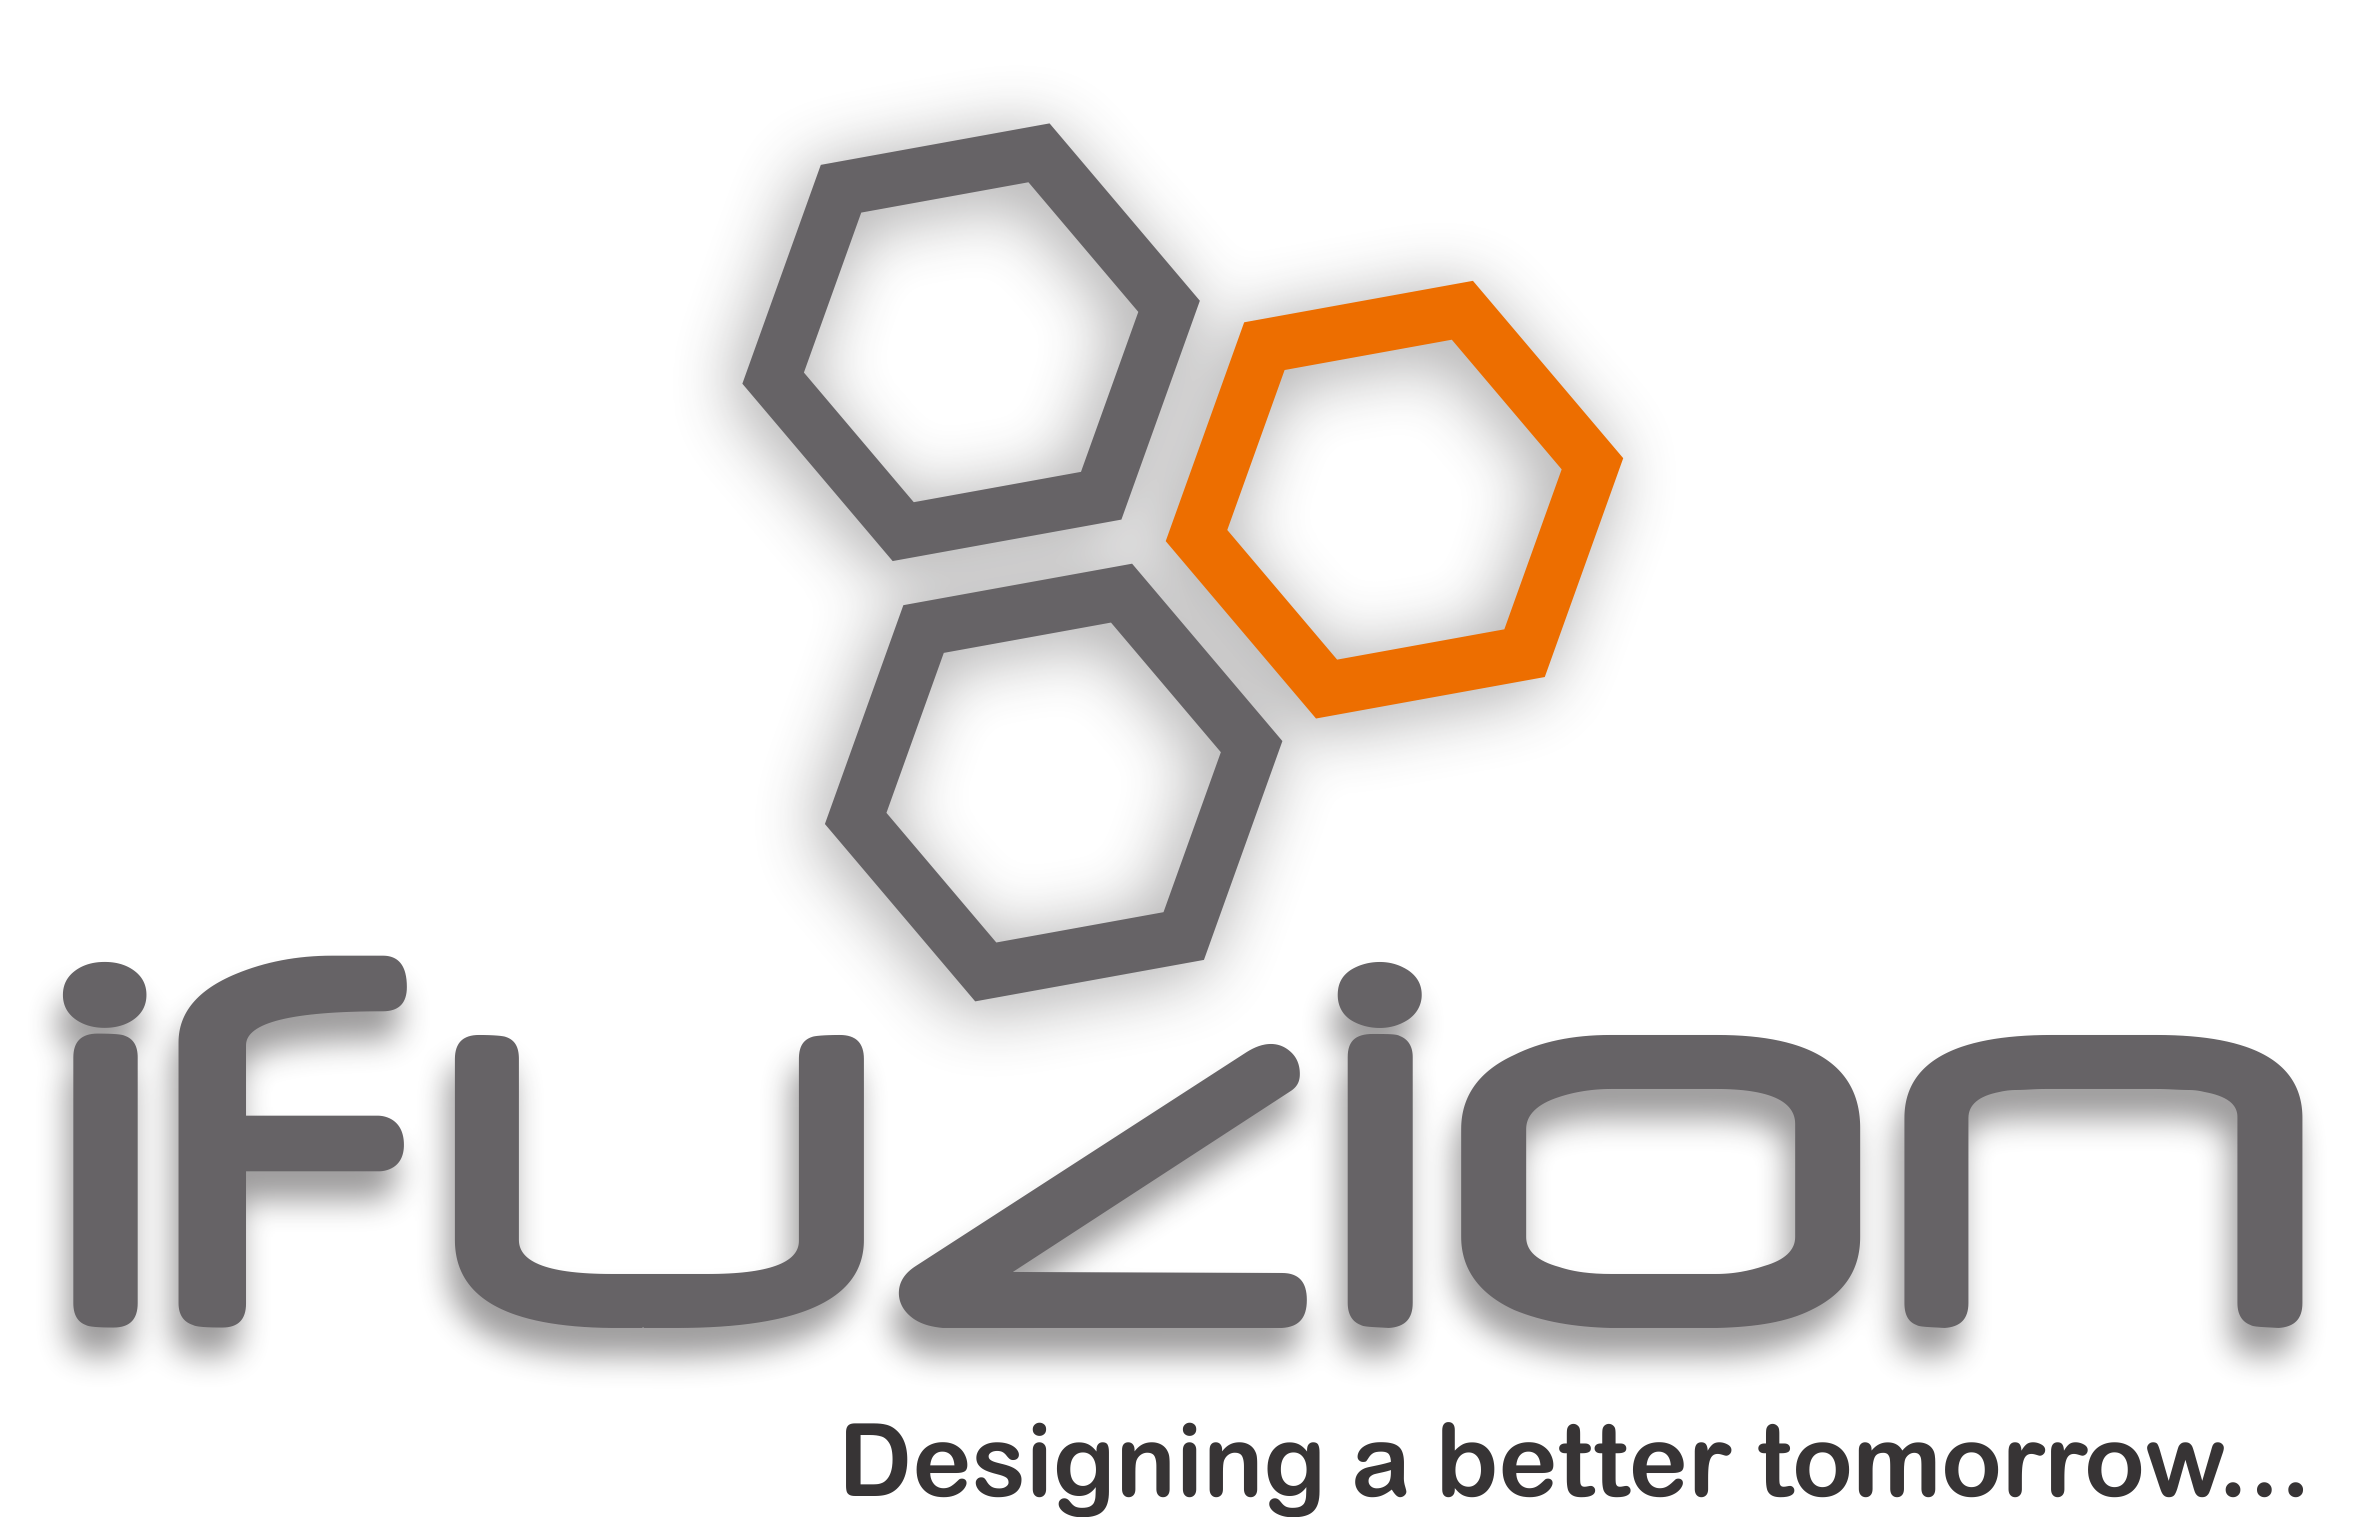 iFuzion Logo Stacked Tag Line Offset 11c